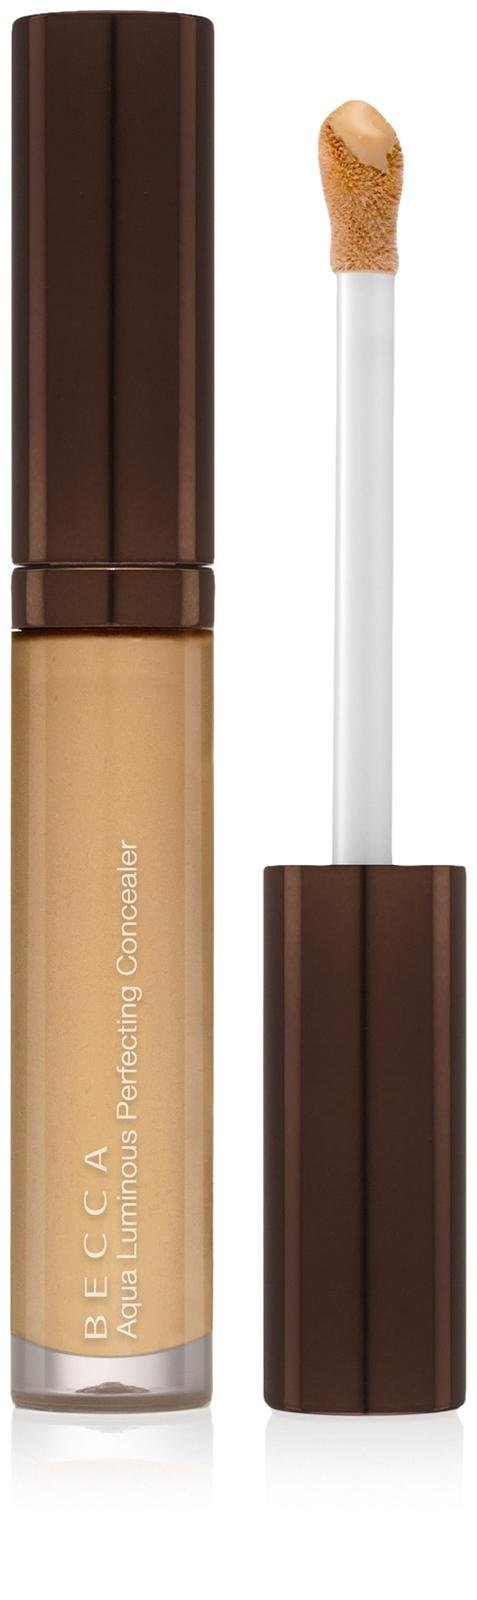 BECCA, Aqua Luminous Perfecting Concealer-Medium